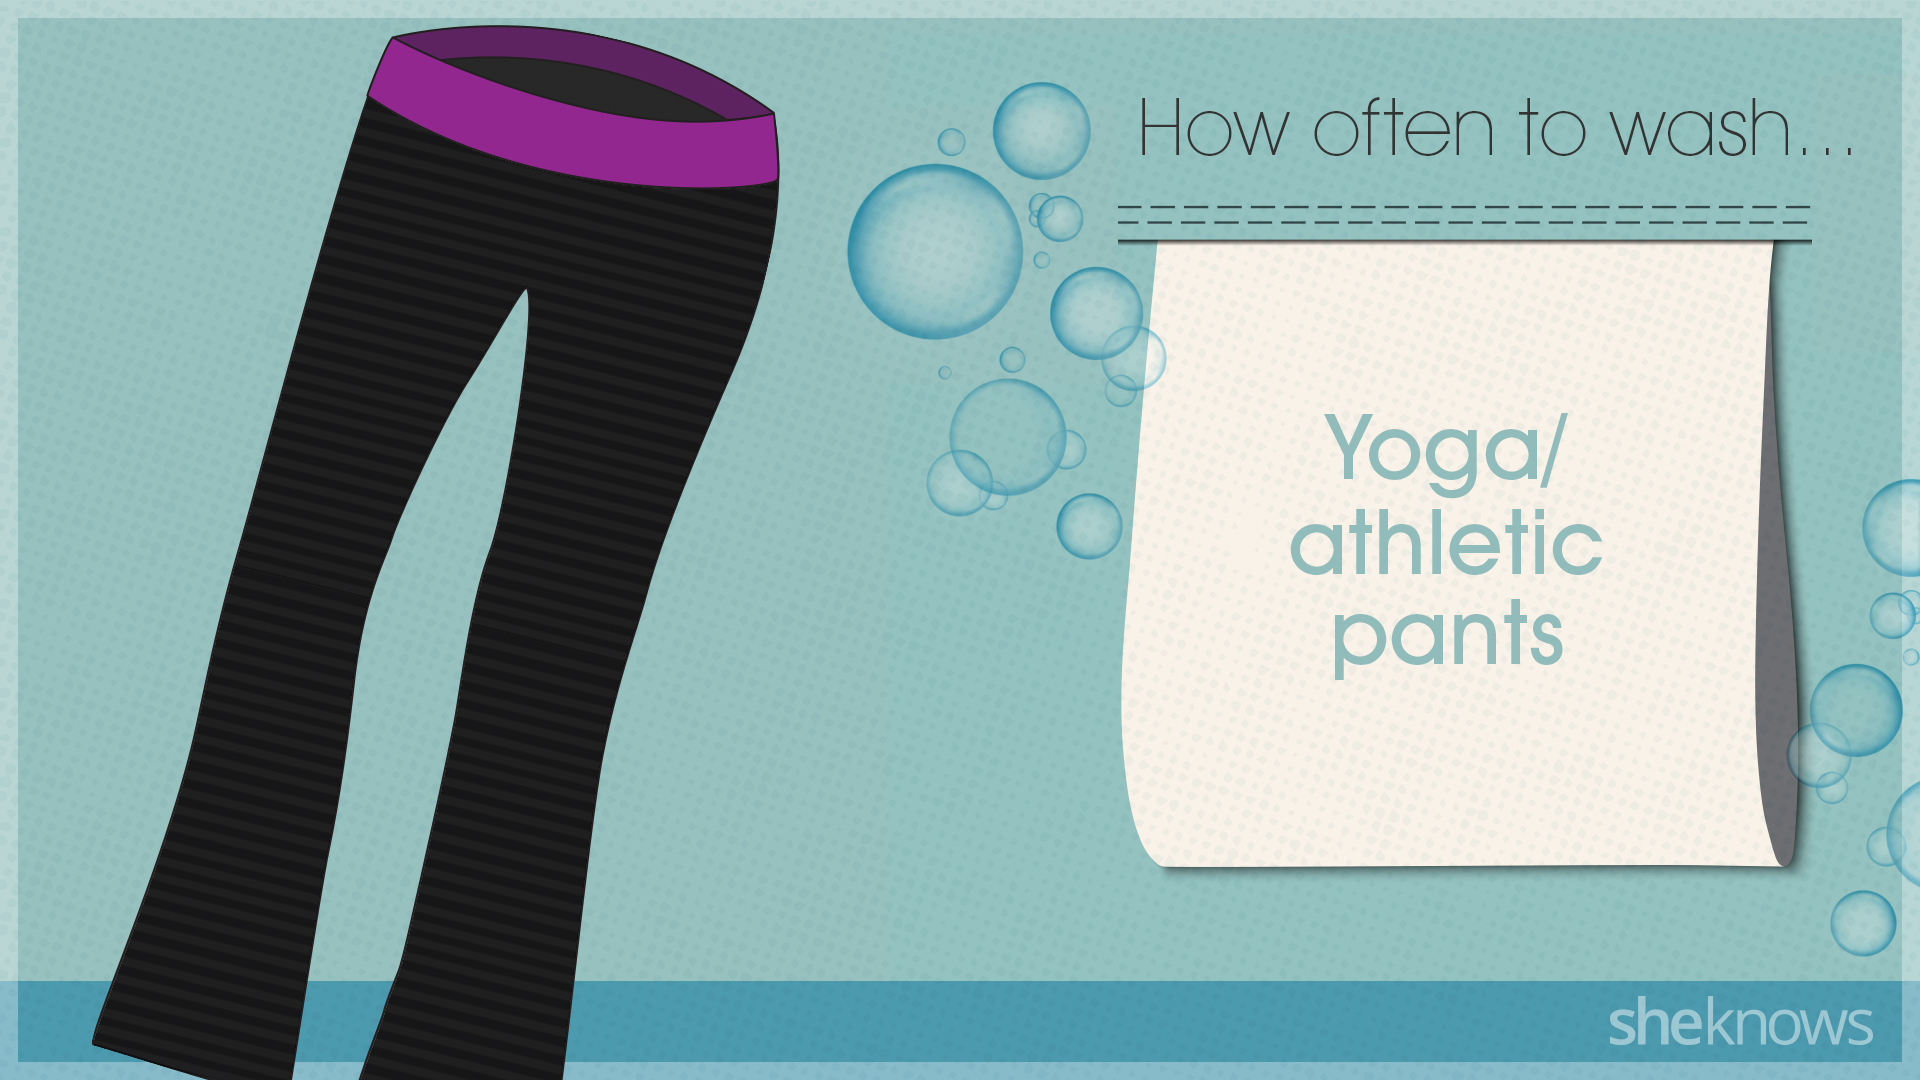 You're probably washing your clothes too much: Yoga